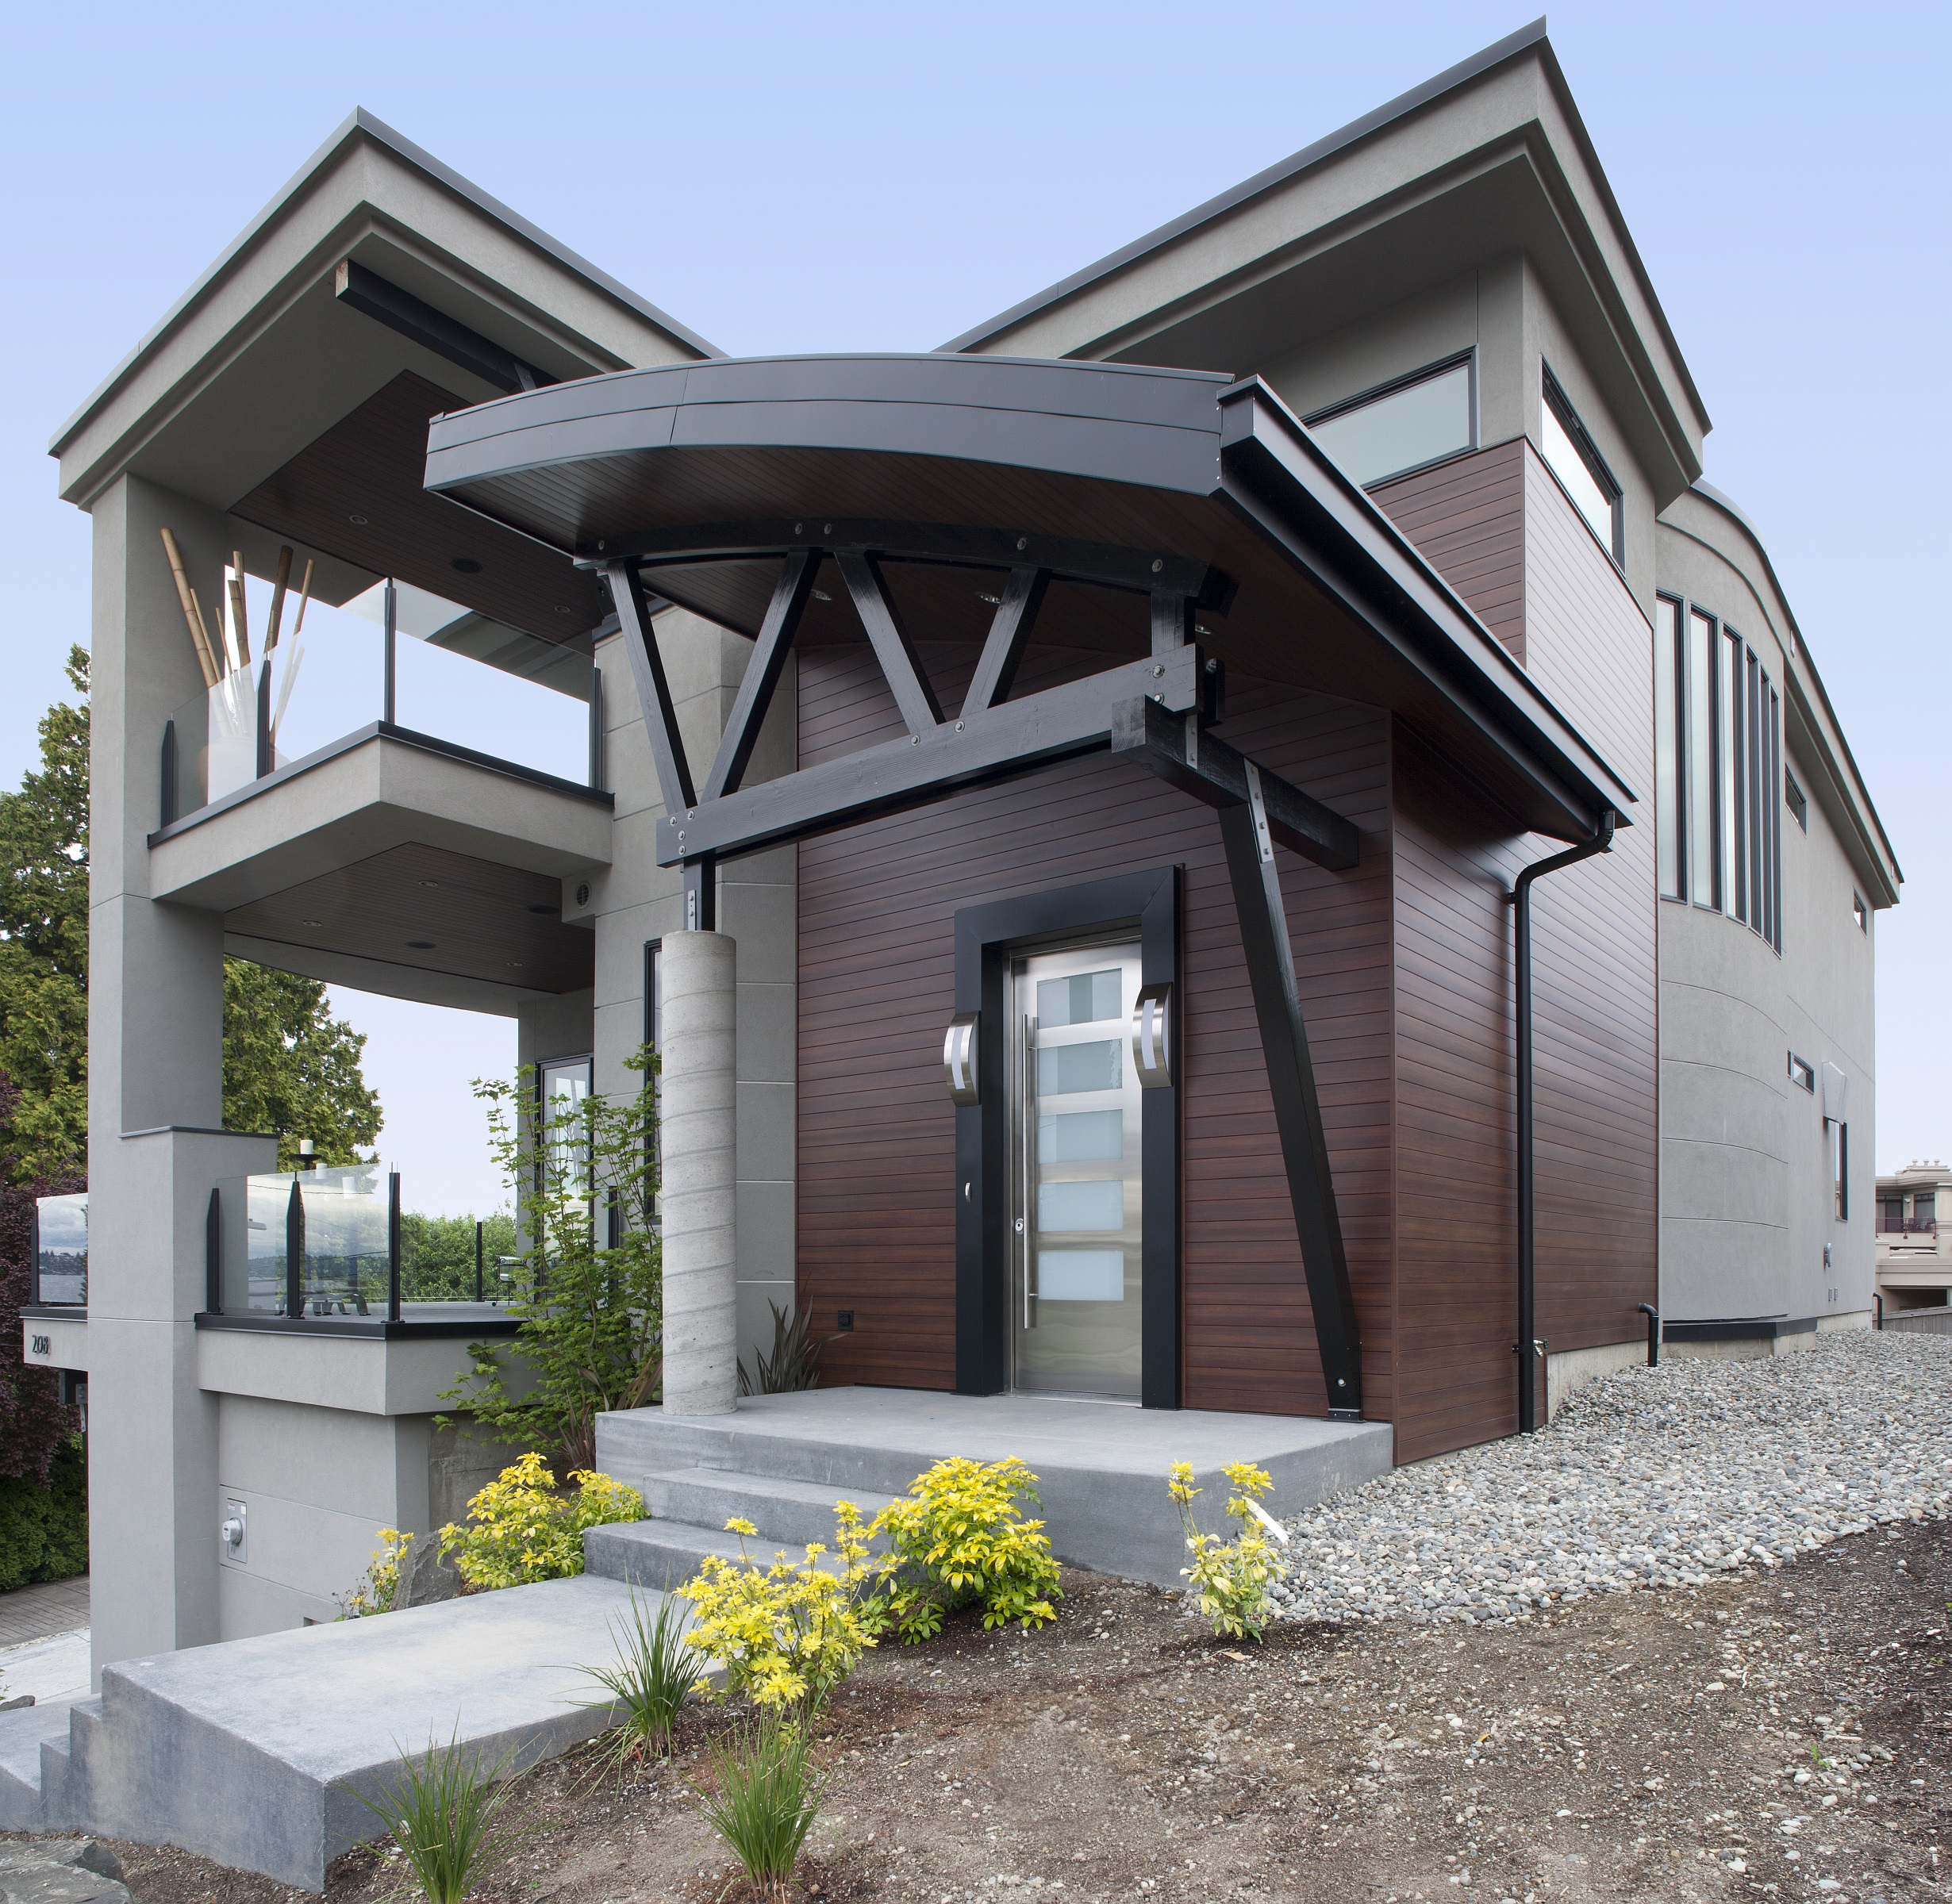 Passive solar home architect magazine kirkland wa for Modern home builder magazine